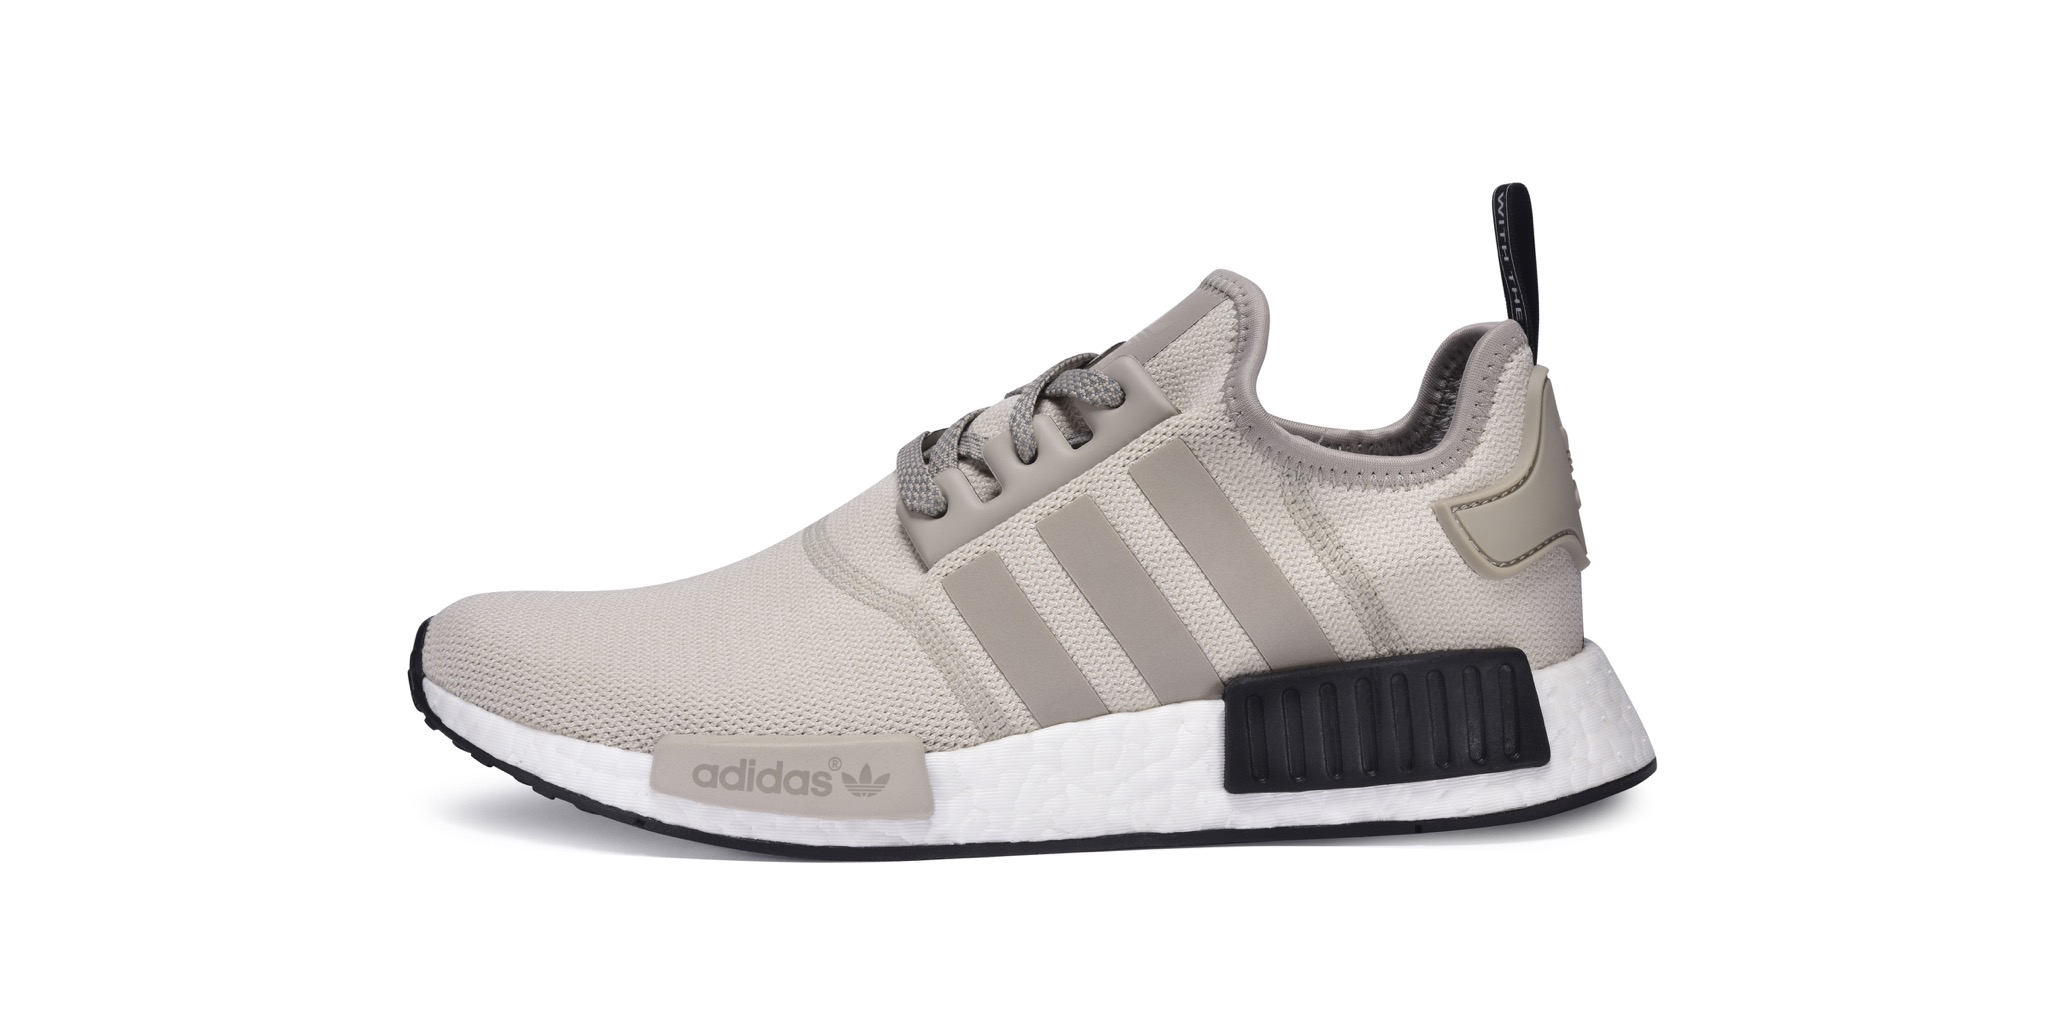 High_1600_800@x3_0015_adidas-NMD-R1-Light-Brown-Black_11082